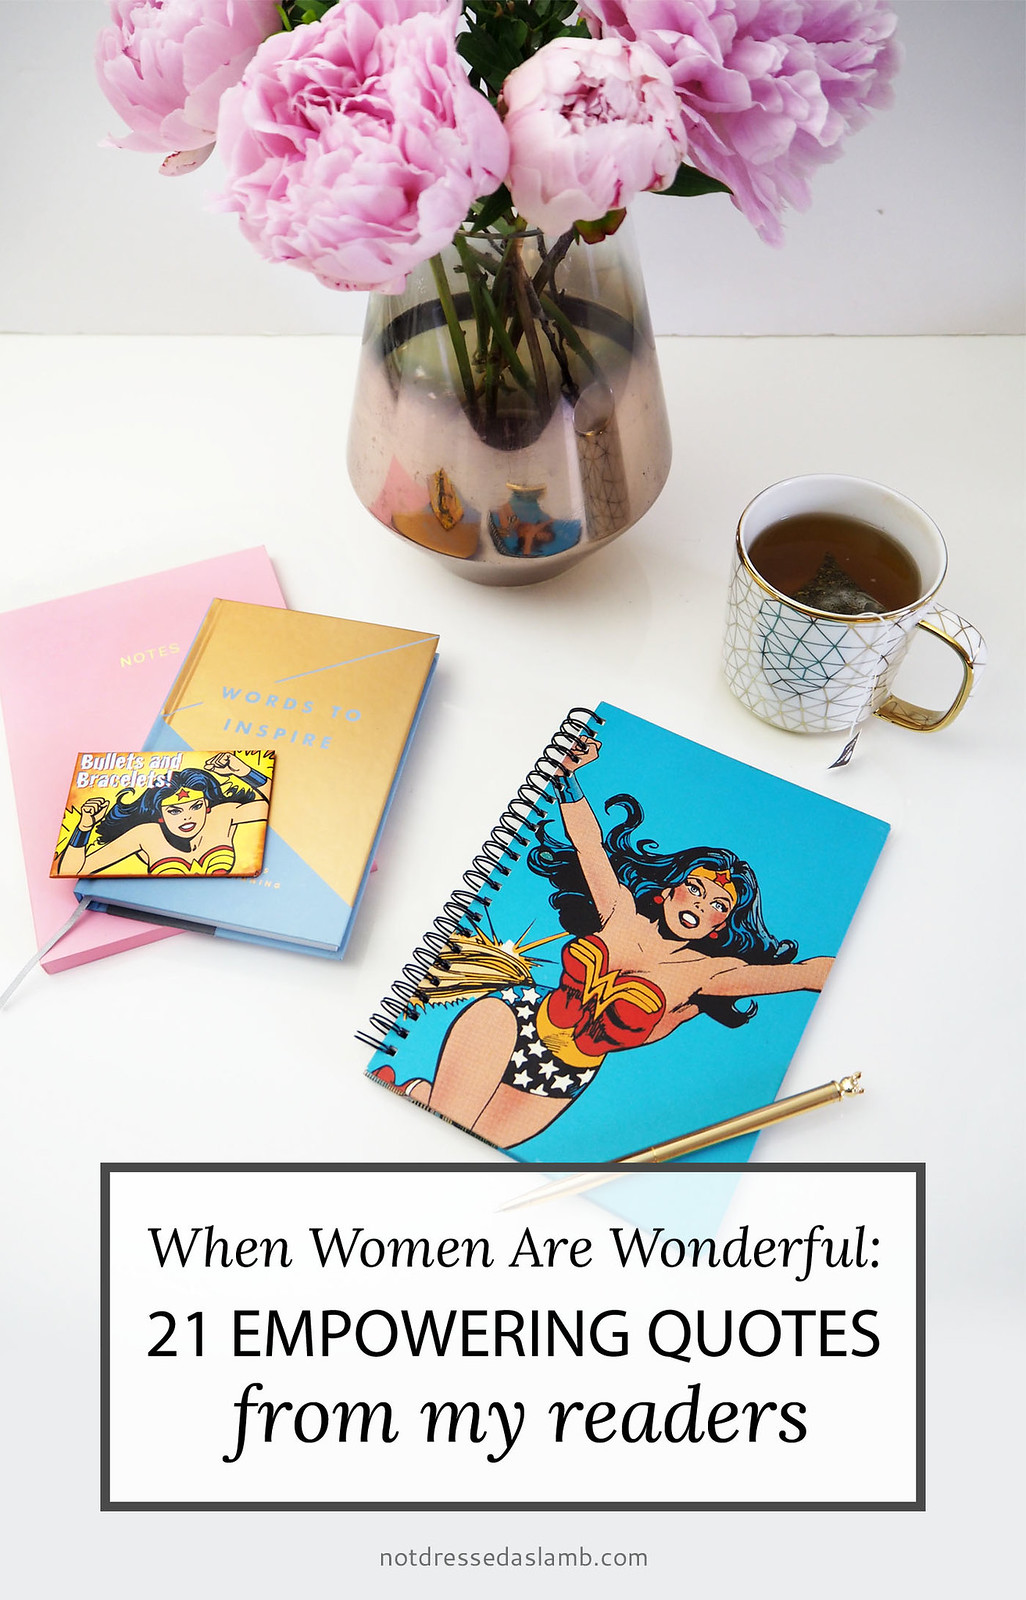 When Women Are Wonderful: 21 Empowering Quotes From My Readers